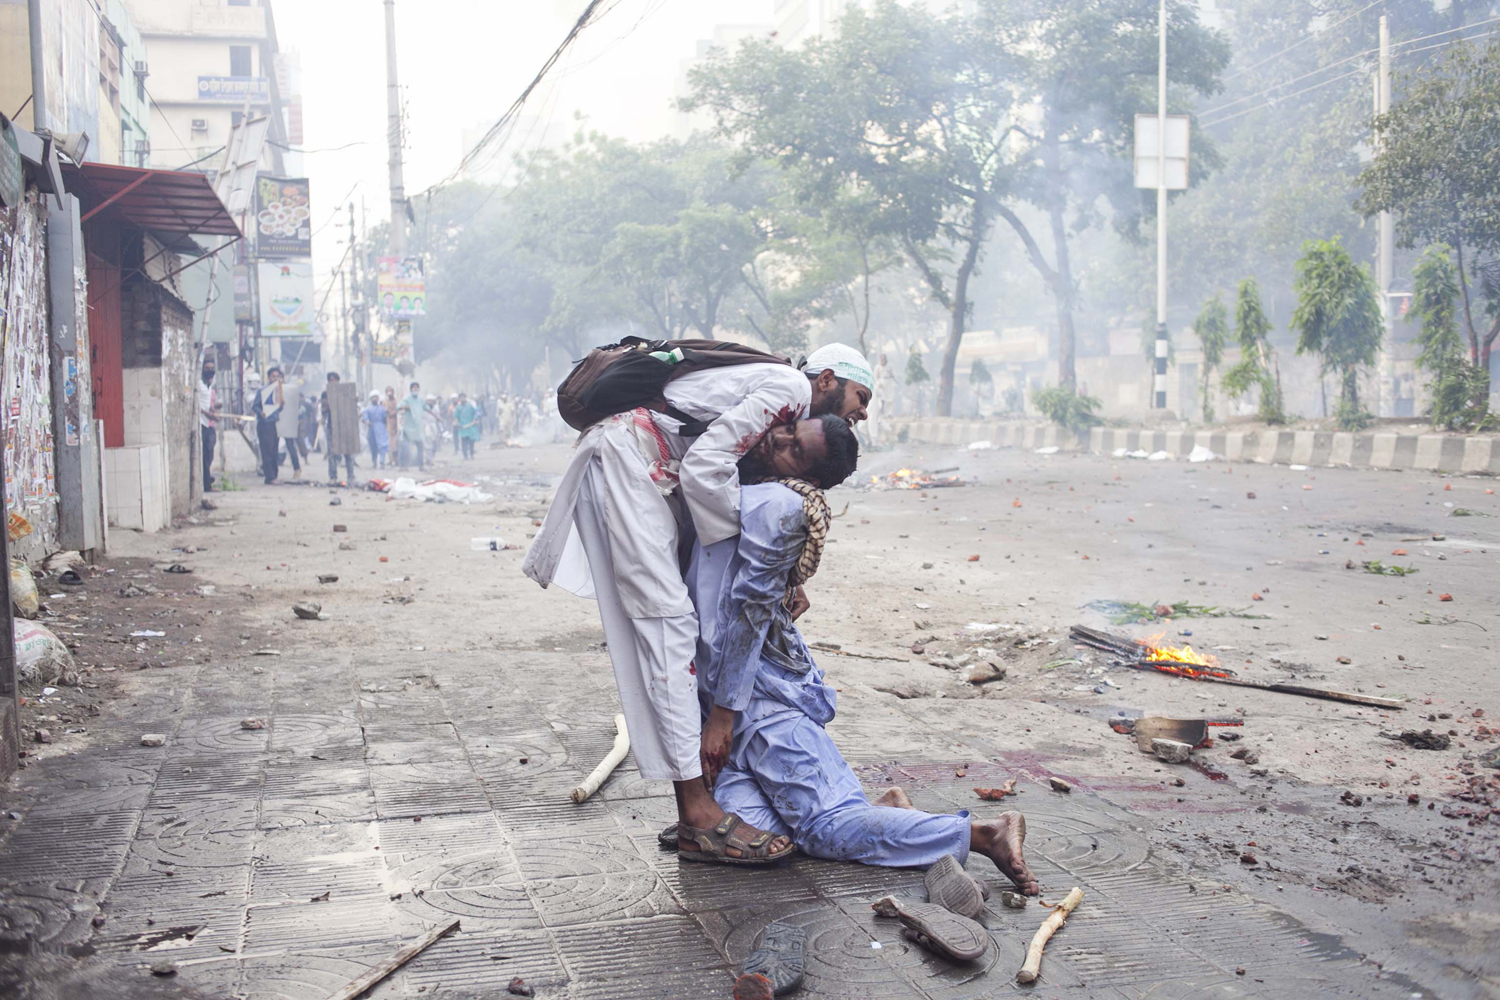 May 5, 2013. An activist tries to take another severely injured activist to the hospital, as no one else offers to help, in Dhaka, Bangladesh.